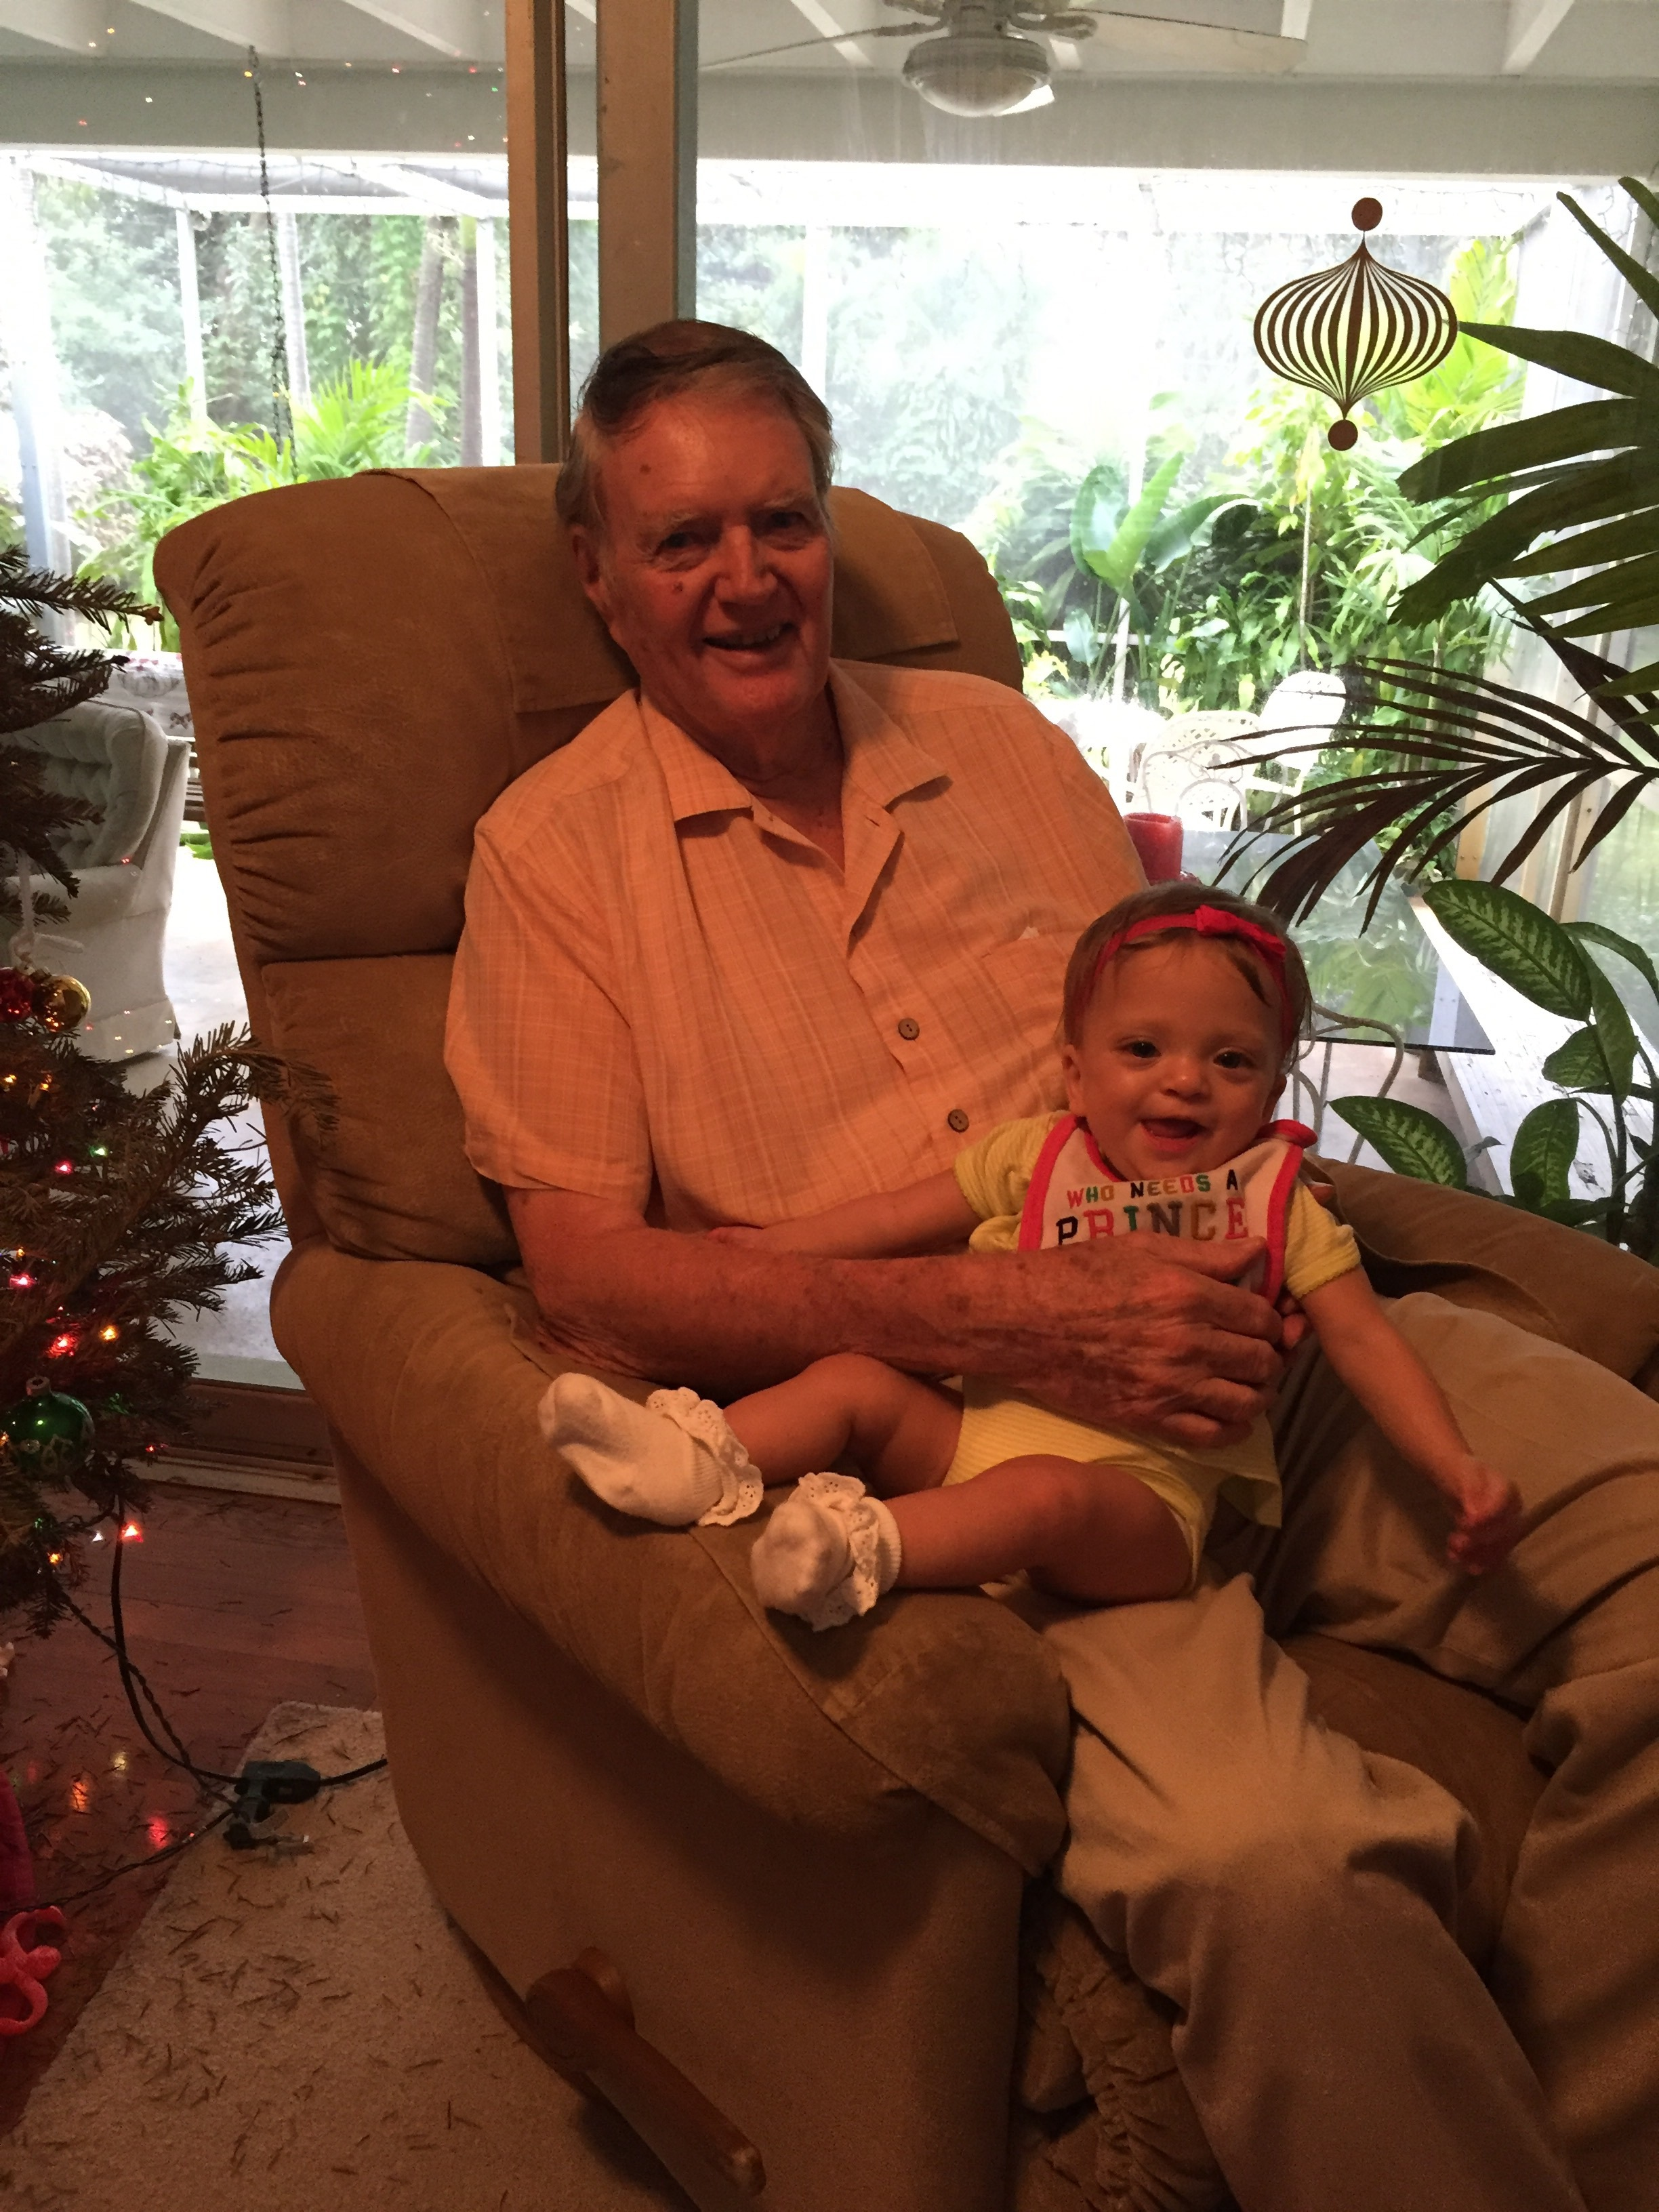 Lucie loved meeting her Great Grandpa!